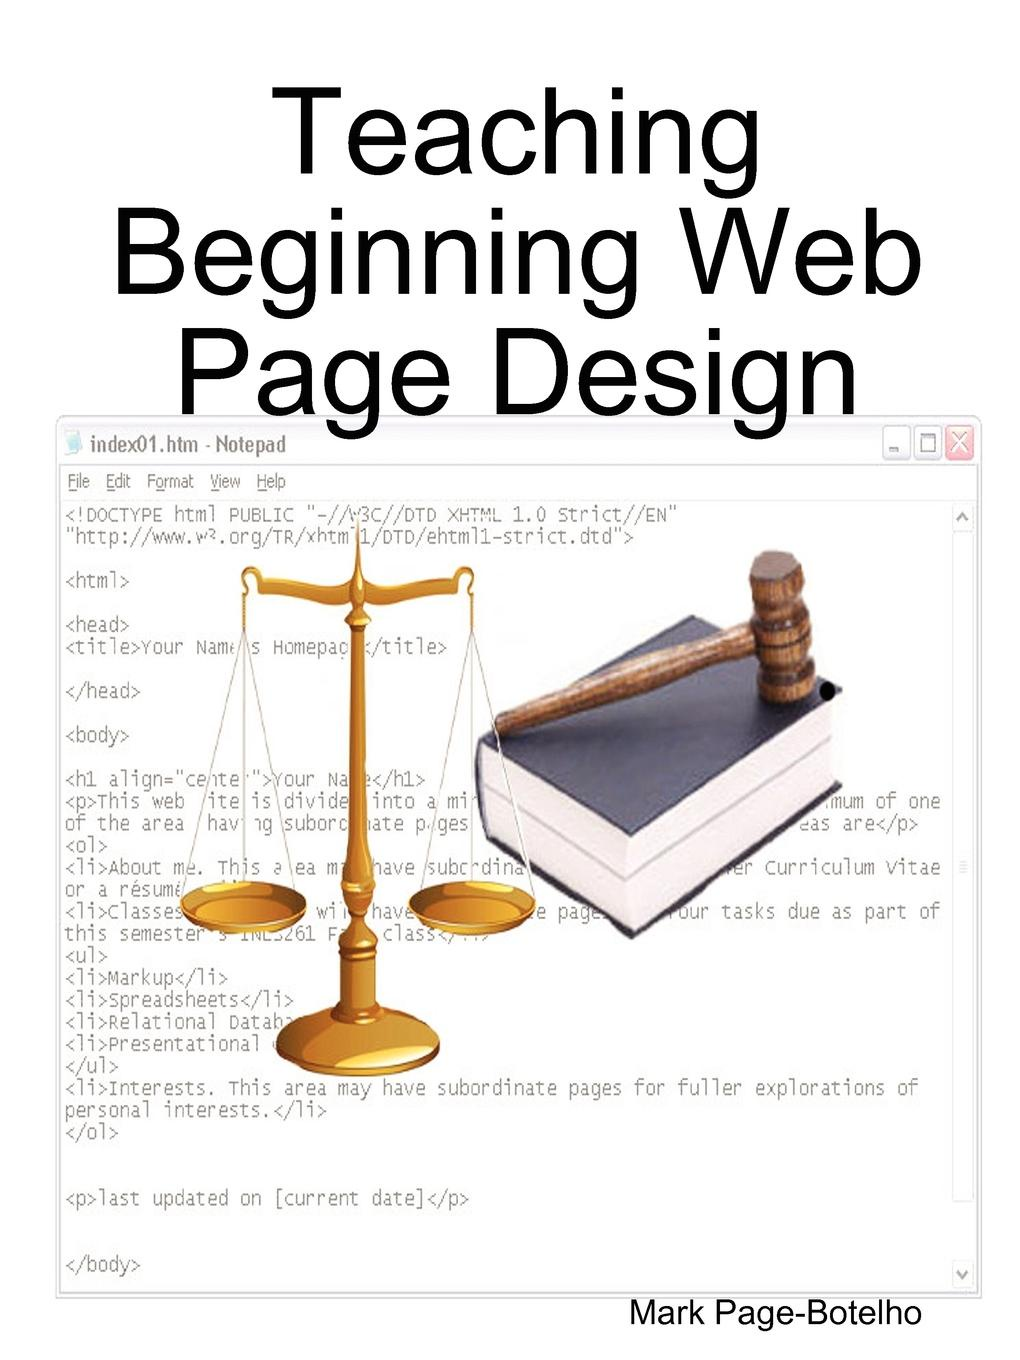 Mark Page-Botelho Teaching Beginning Web Page Design mark page botelho teaching beginning web page design